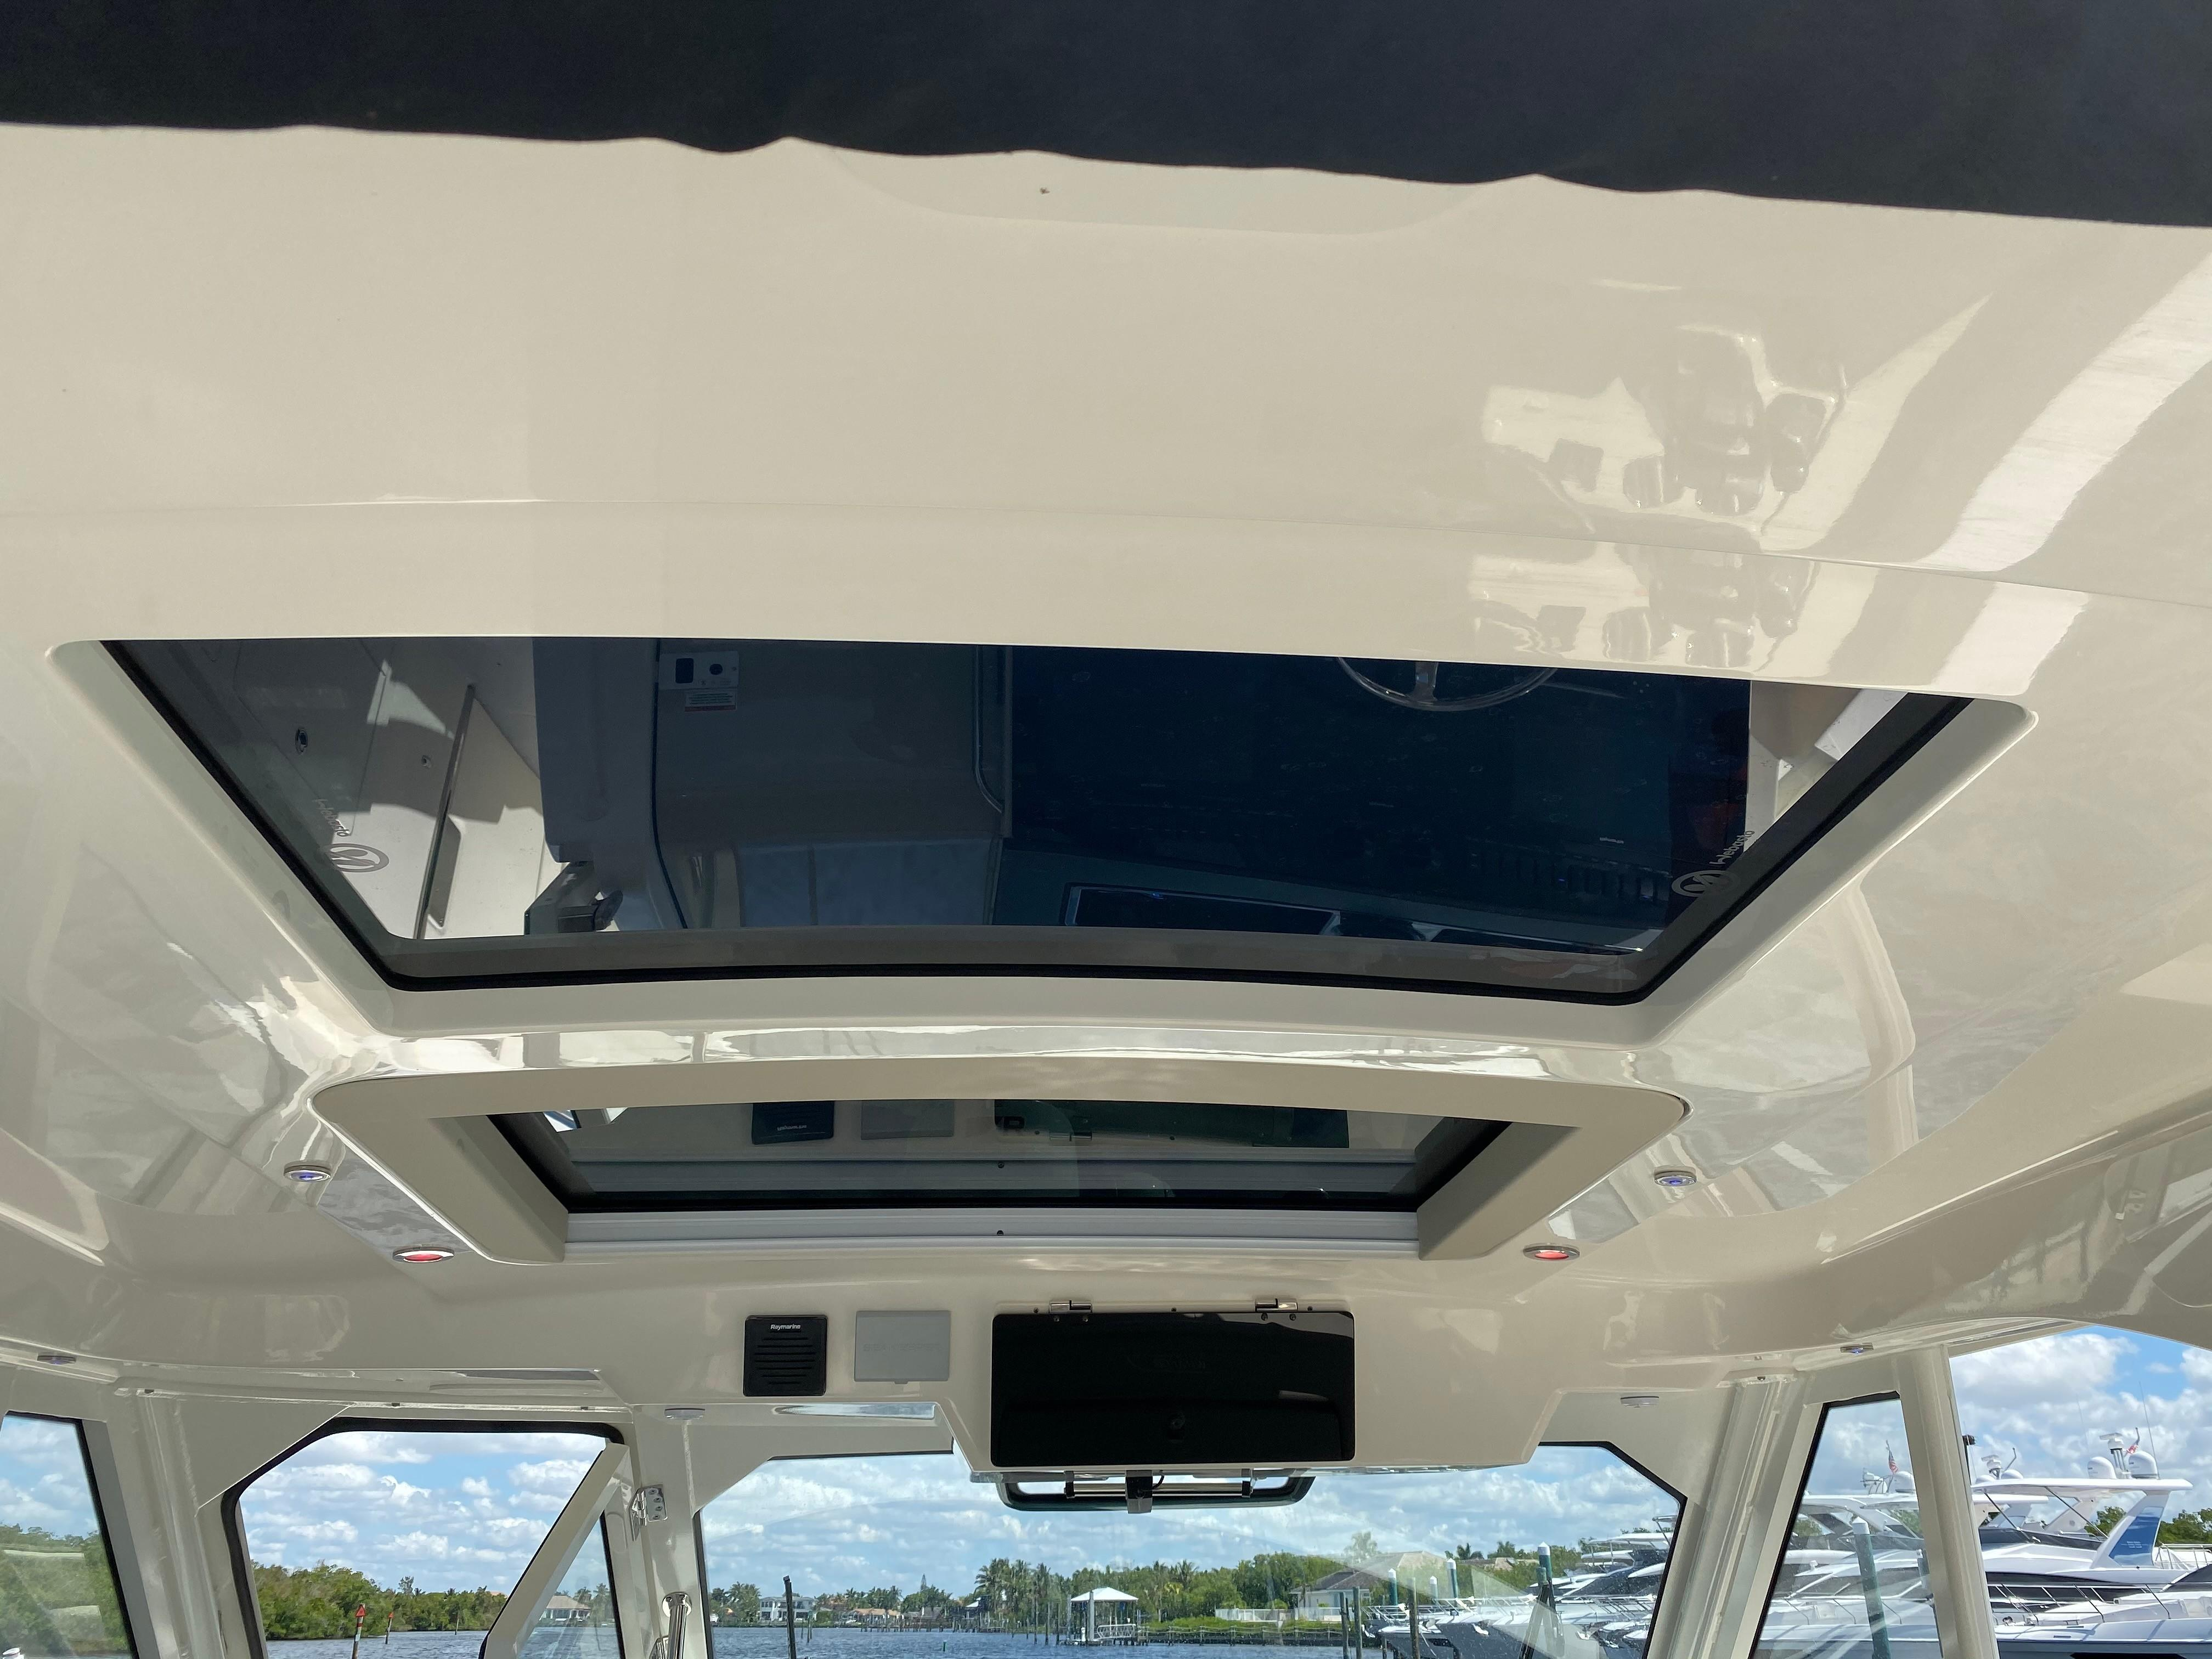 2020 Boston Whaler                                                              380 Realm Image Thumbnail #33